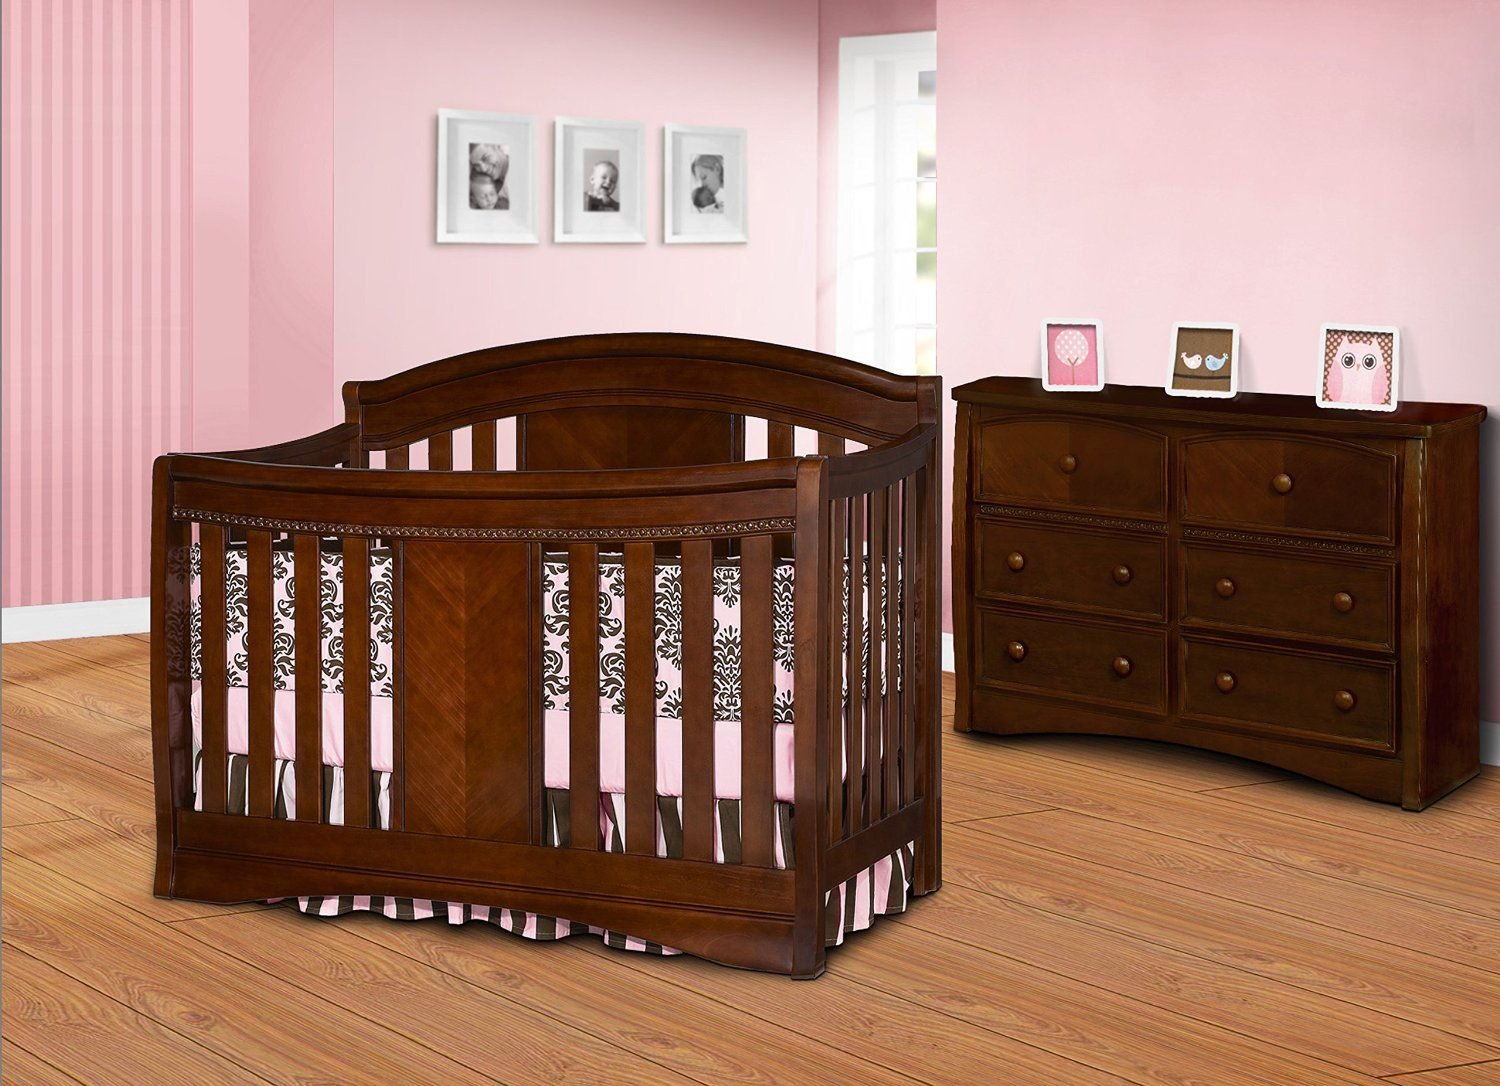 The Simmons Slumber Time Elite 4-in-1 Convertible Kids Crib is a ...